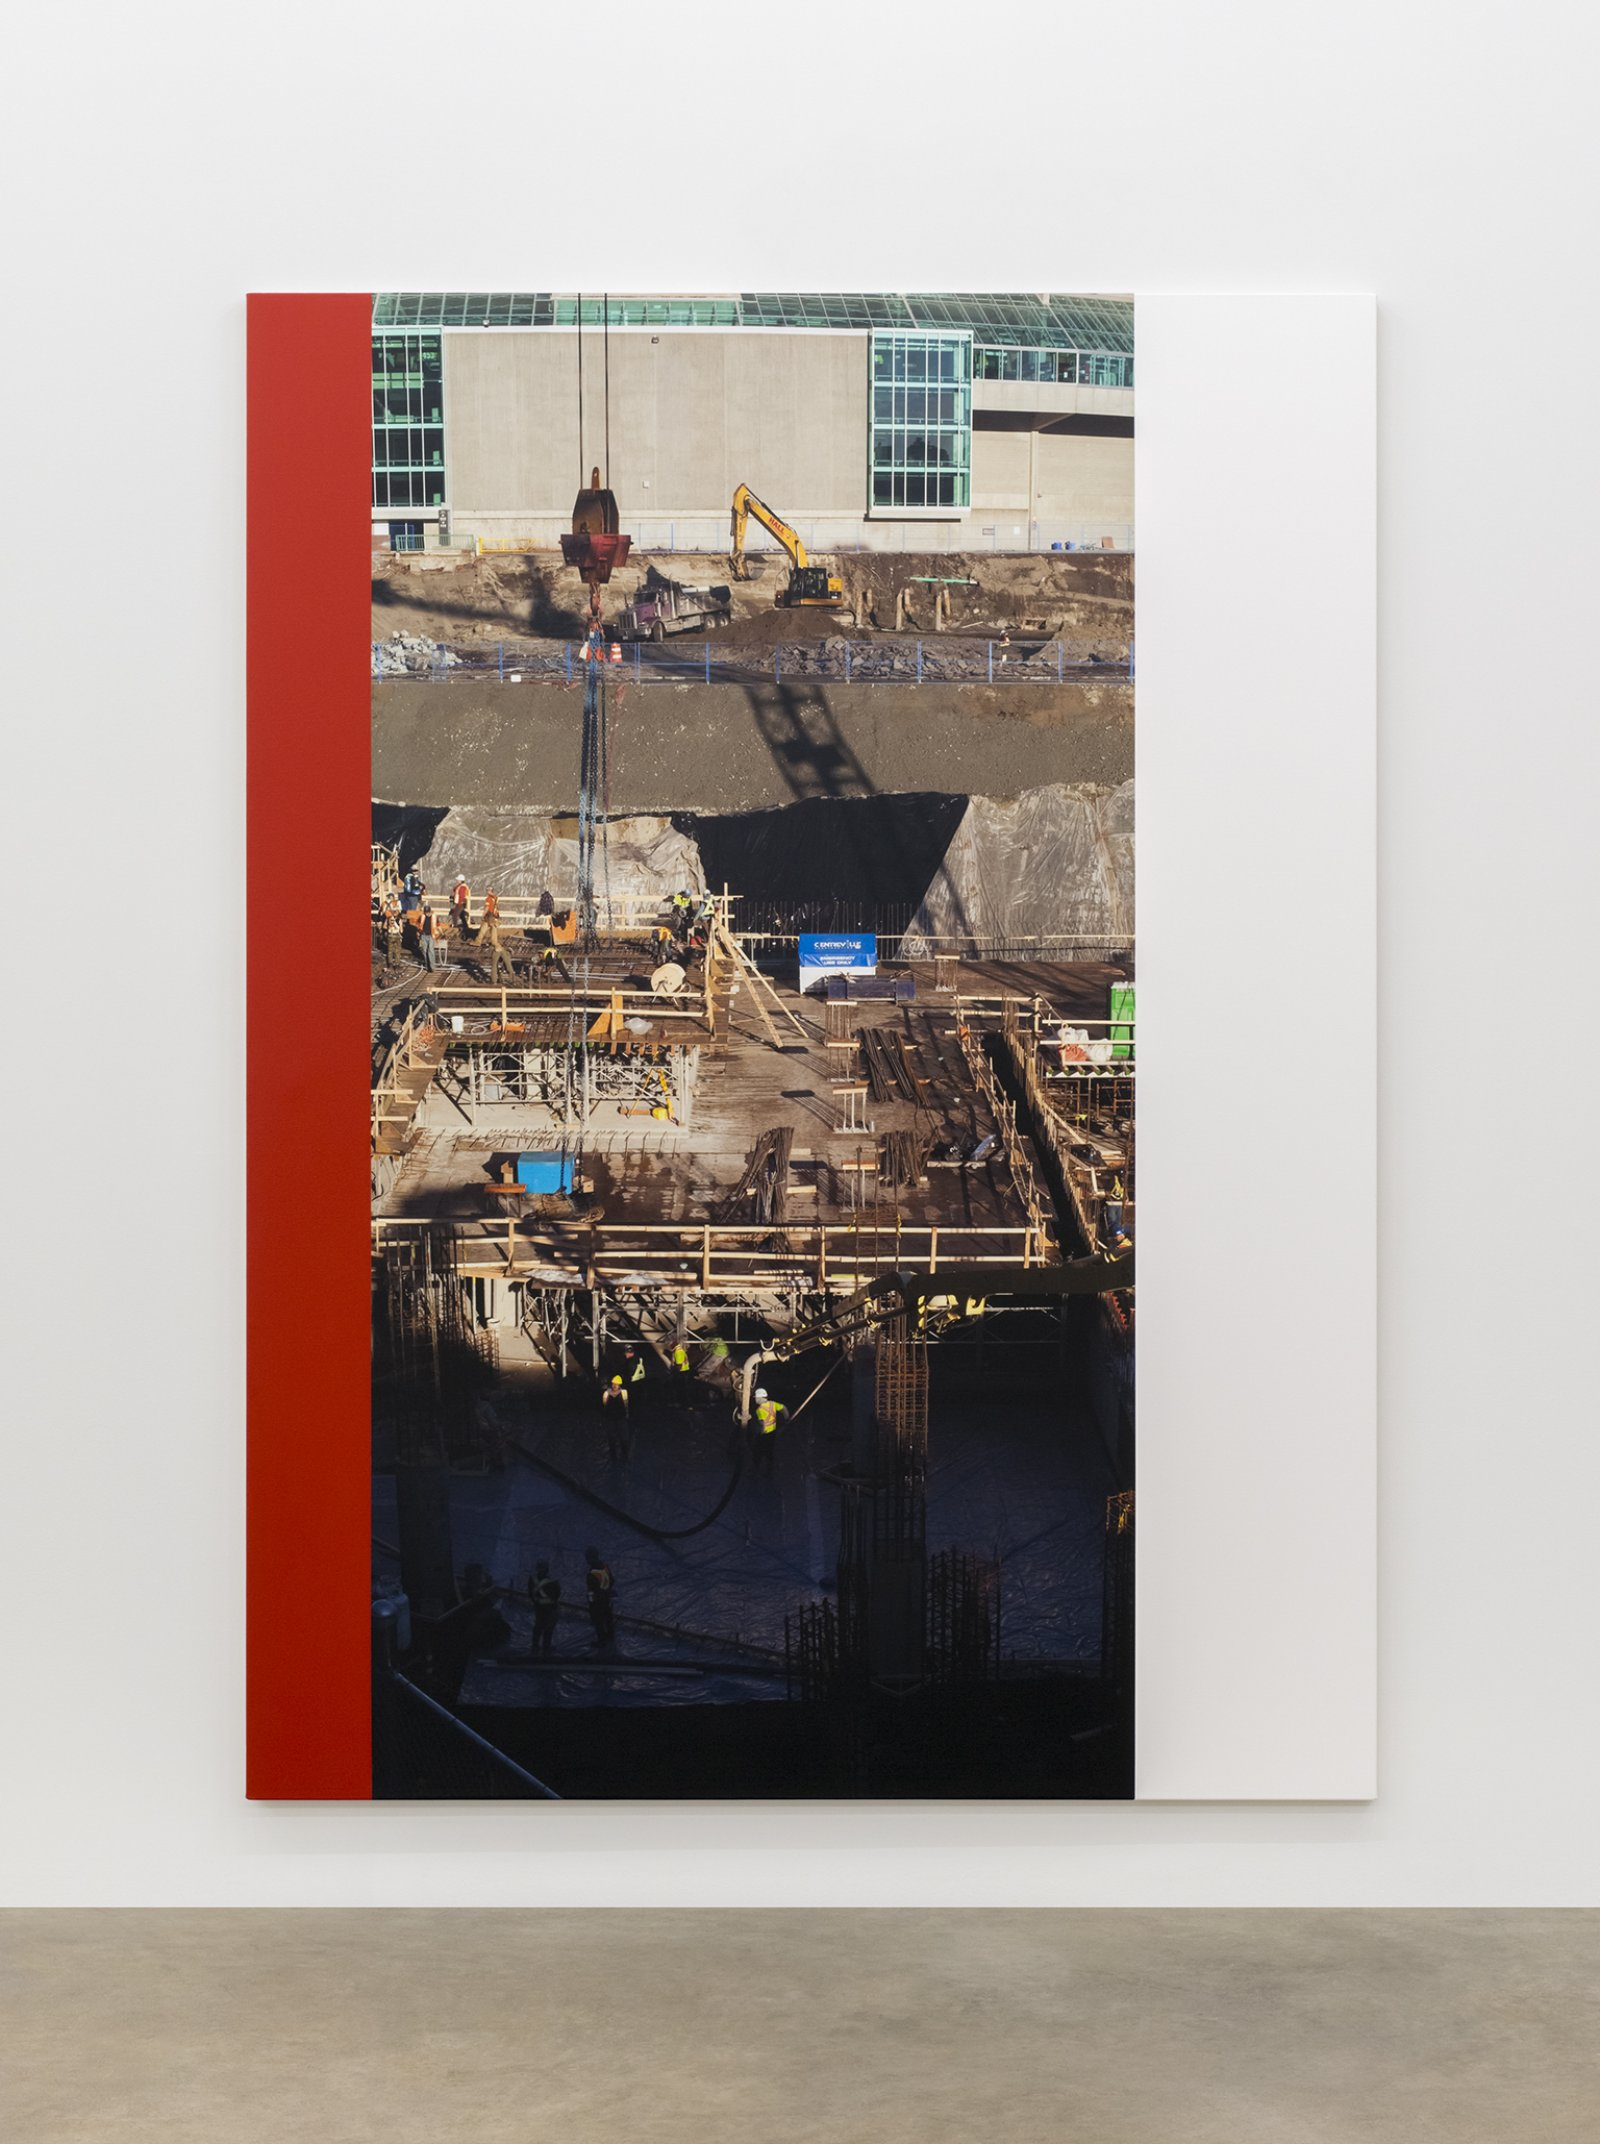 Ian Wallace, Construction Site (Excavation), 2015, photolaminate and acrylic on canvas, 96 x 72 in. (244 x 183 cm) by Ian Wallace